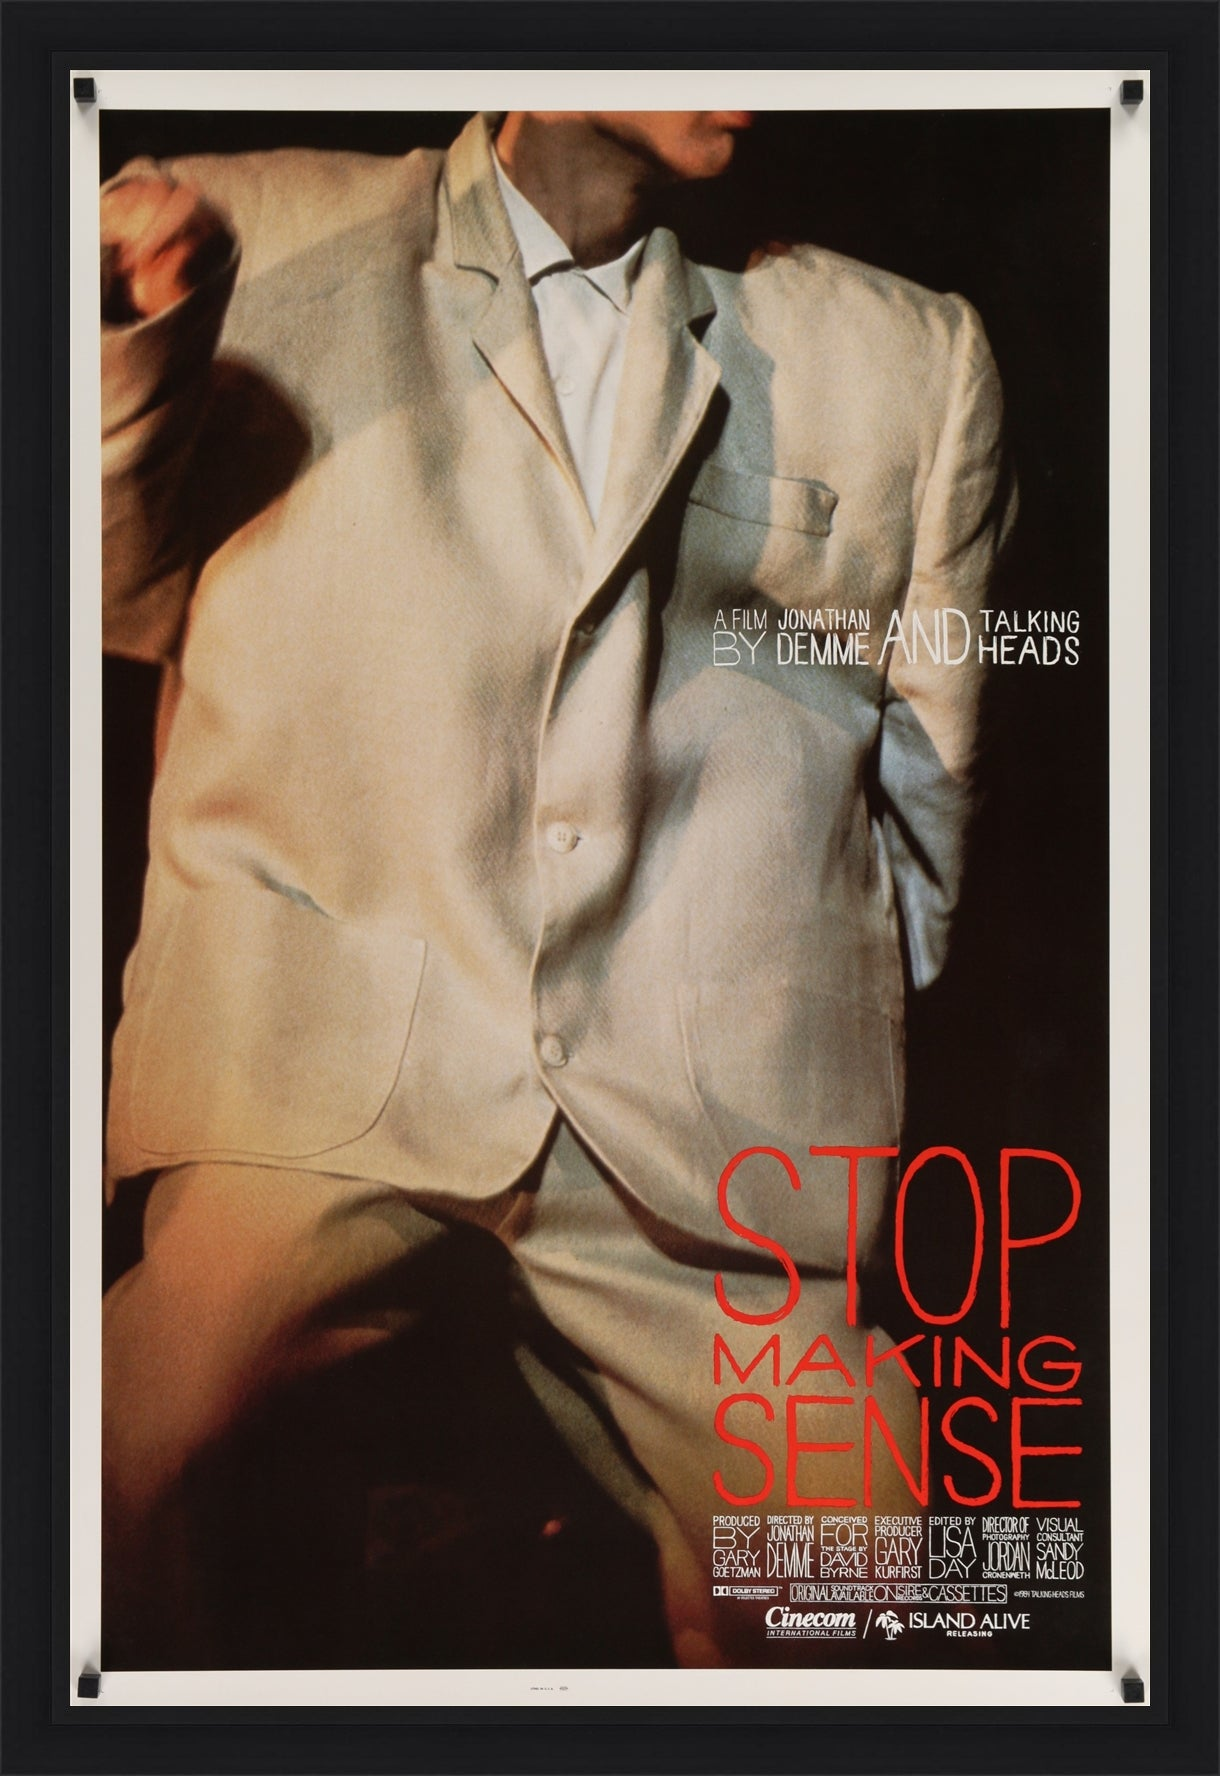 An original movie poster for the film Stop Making Sense starring The Talking Heads